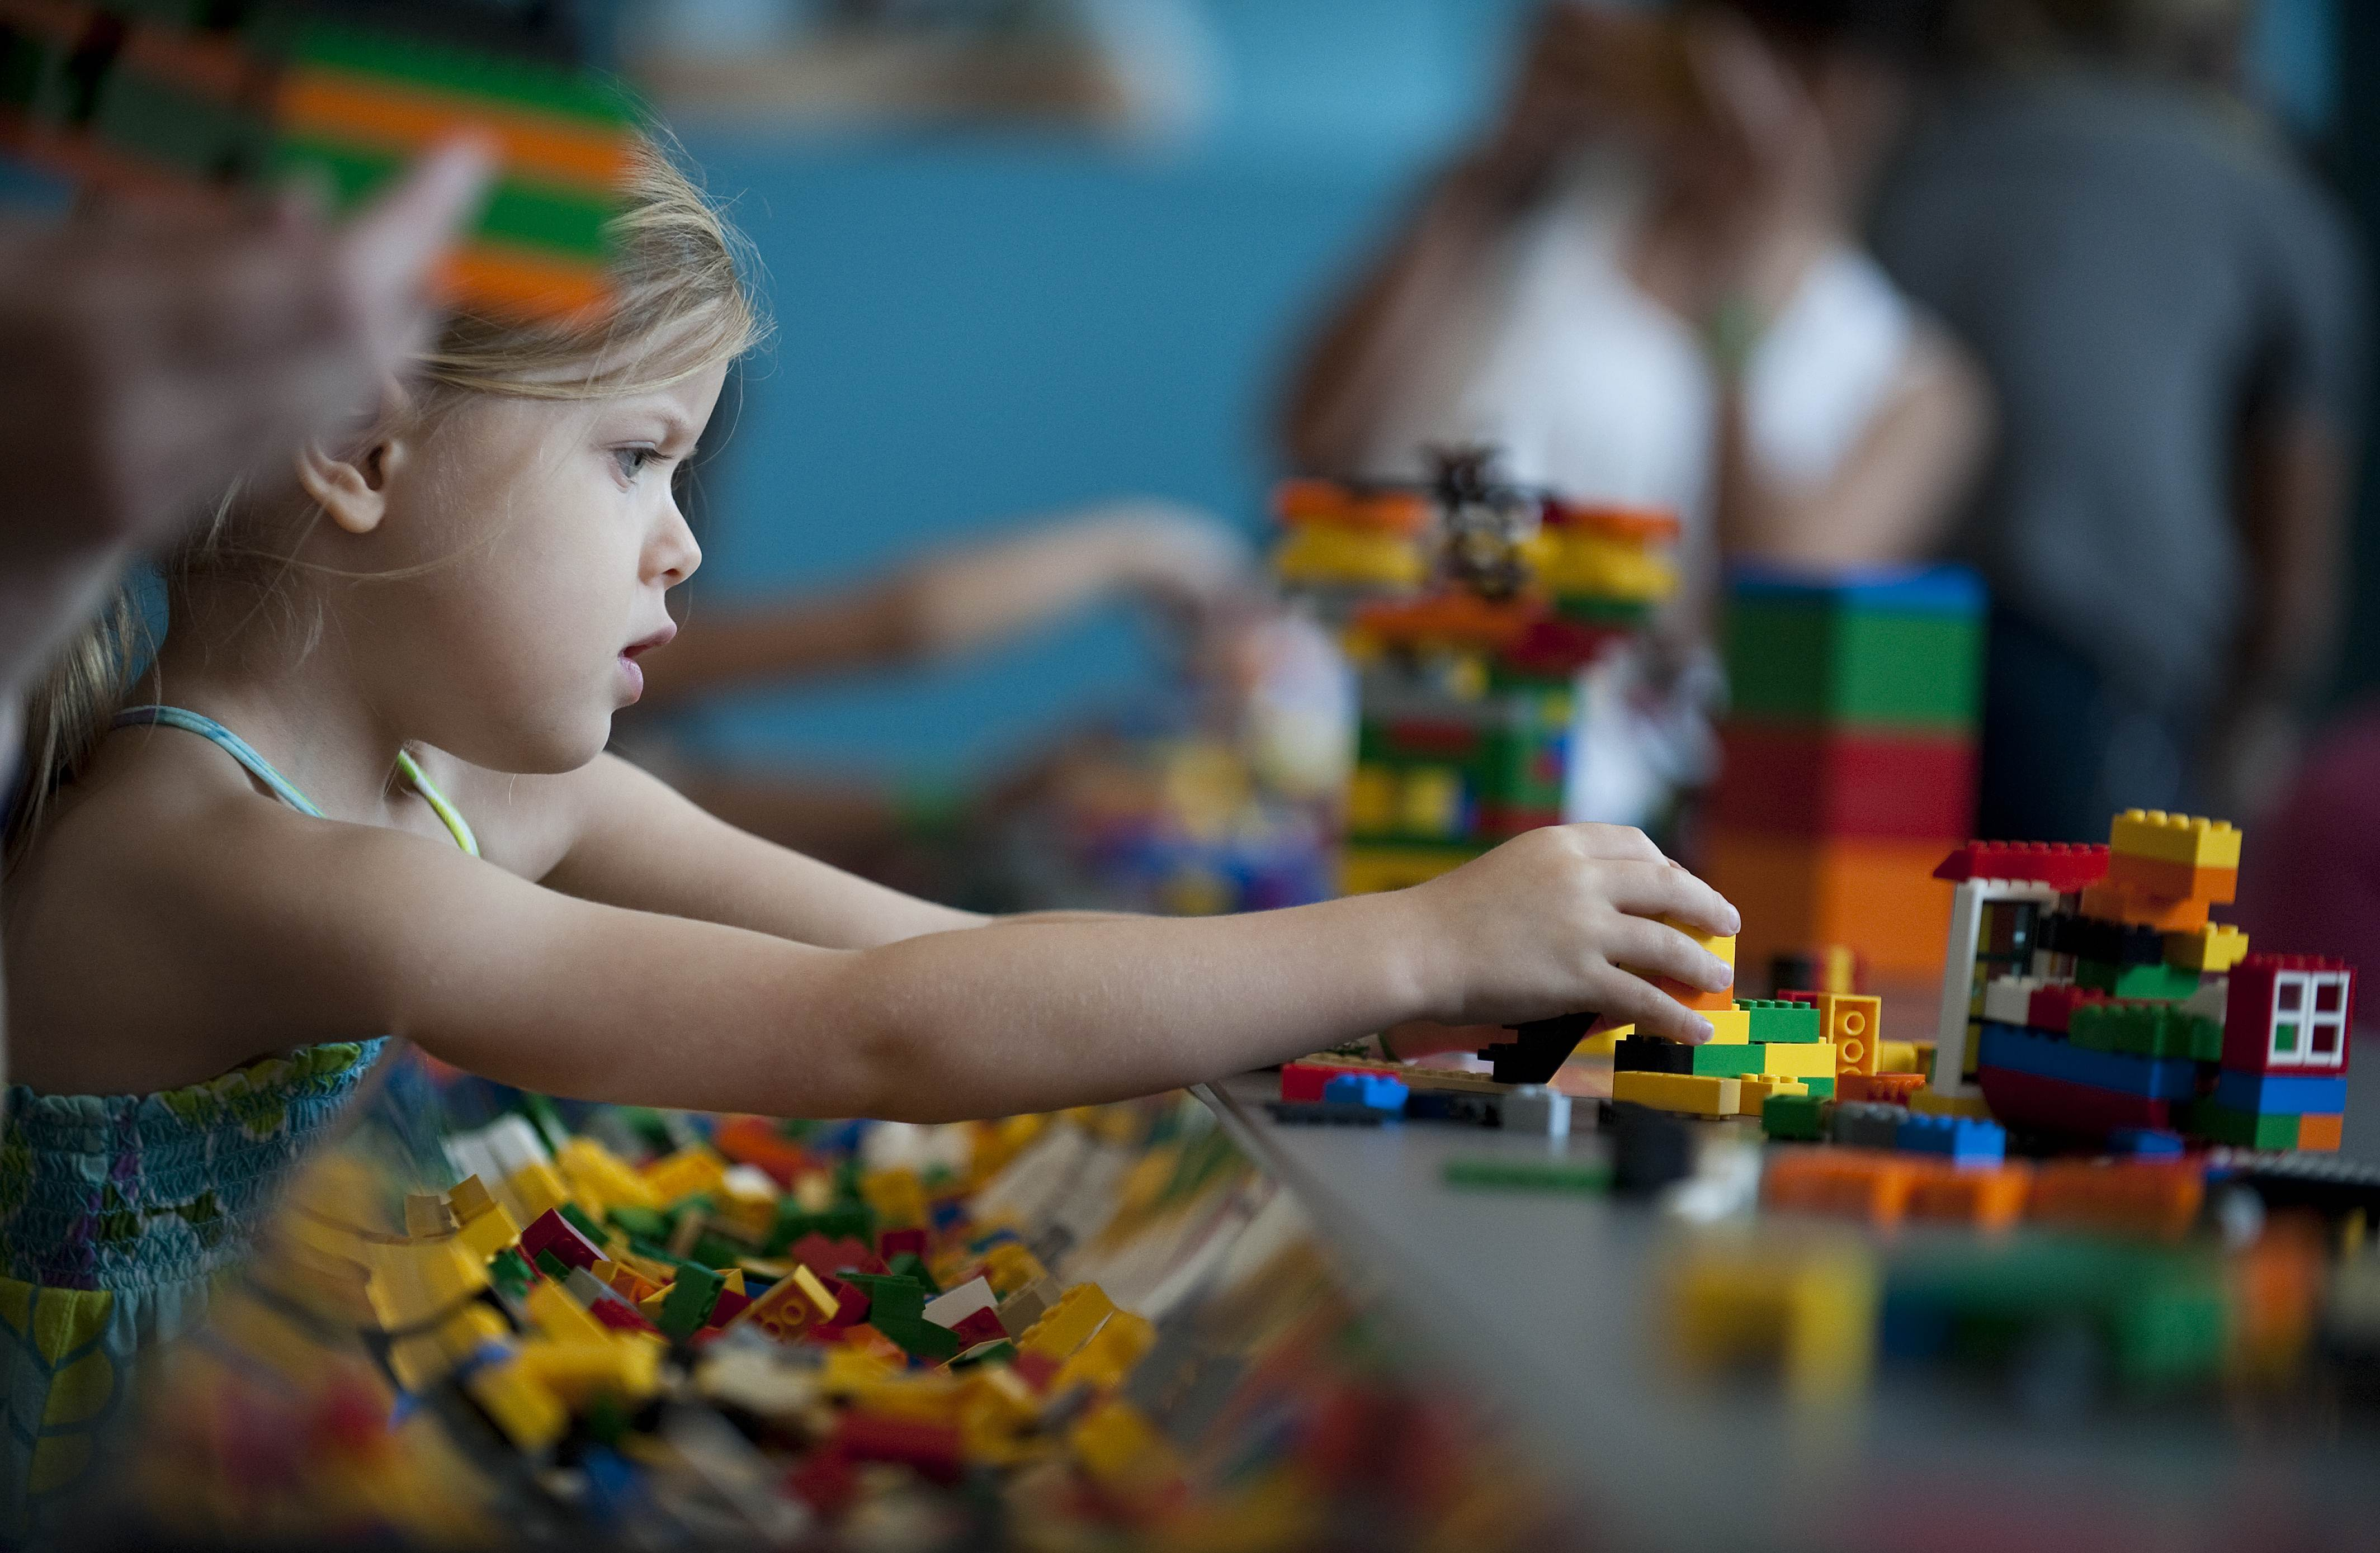 A child plays with Lego building blocks in 2010.